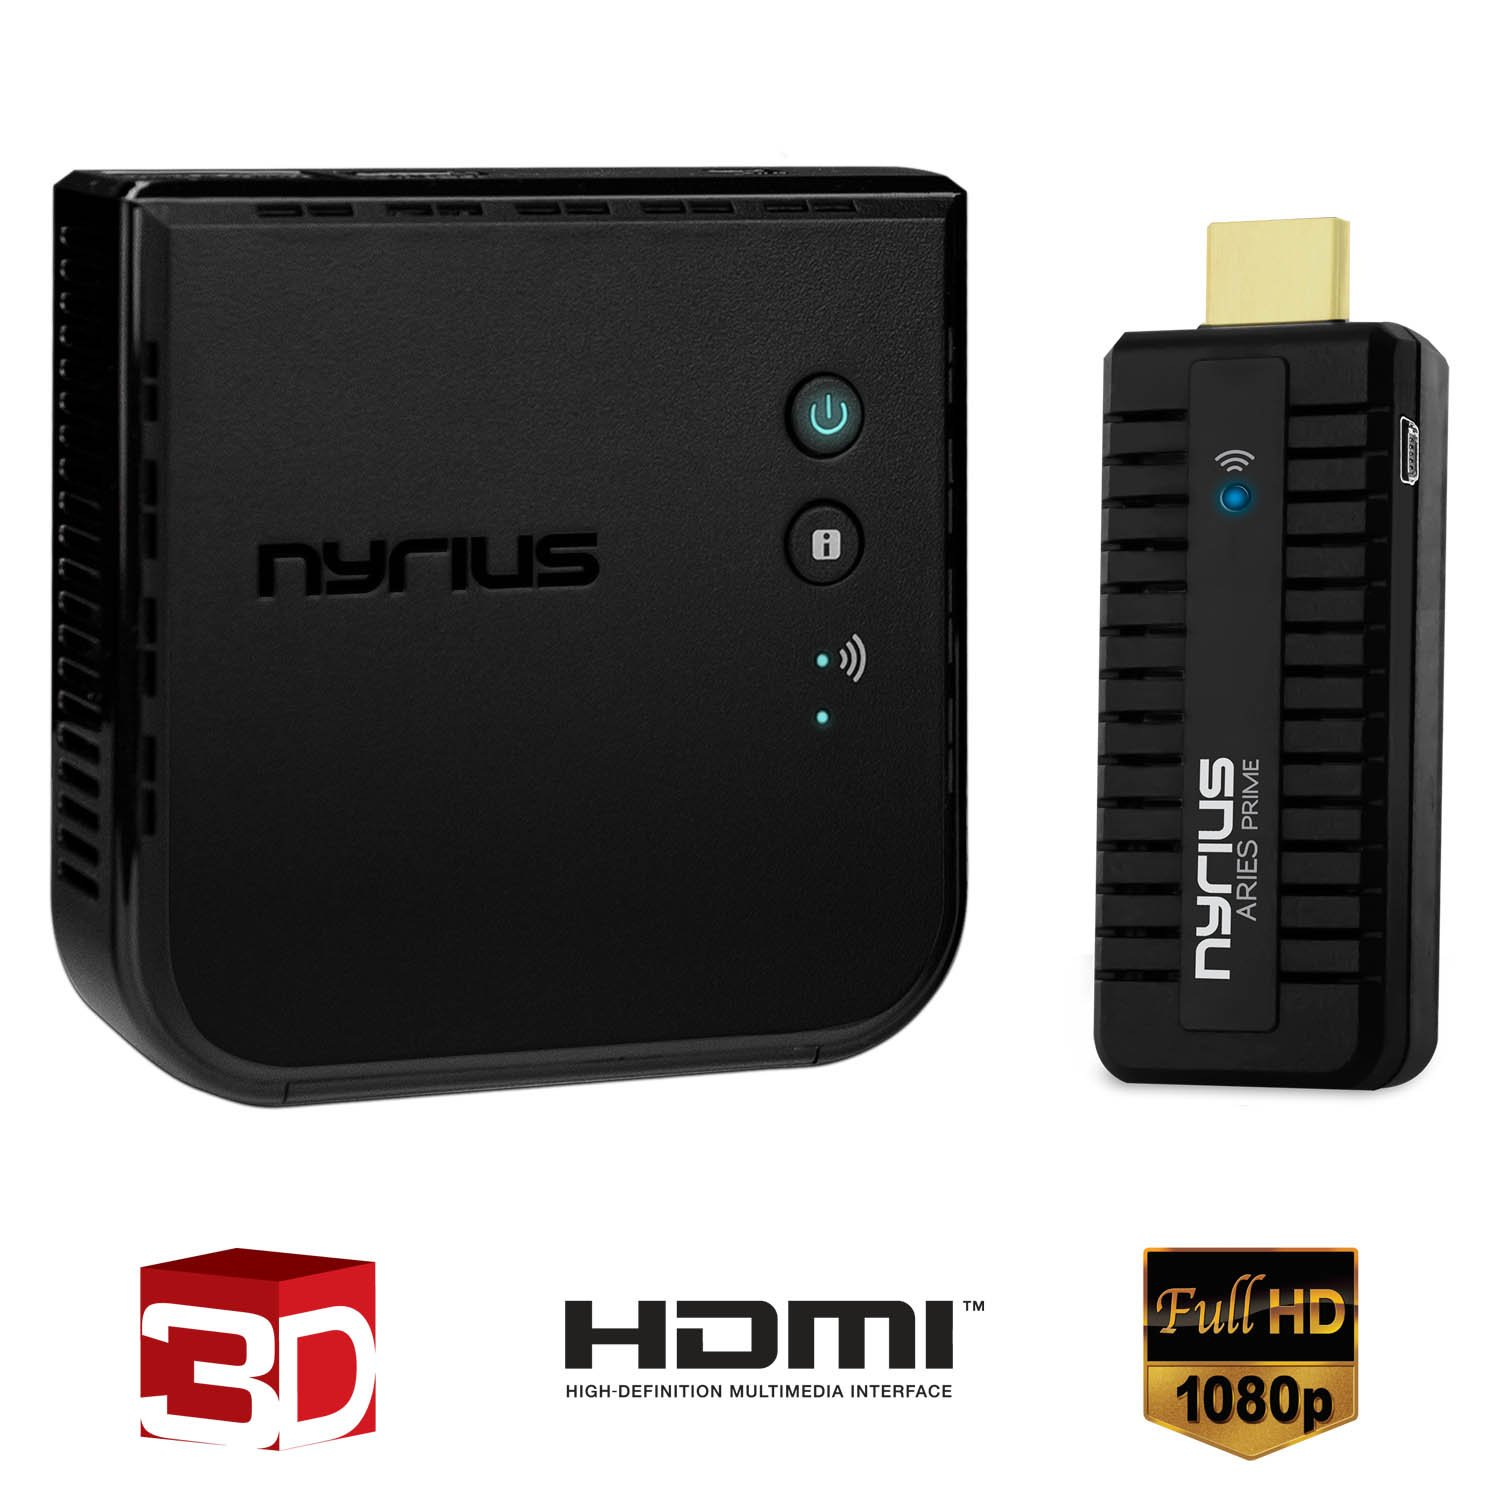 Nyrius ARIES Prime Wireless Video HDMI Transmitter & Receiver for Streaming HD 1080p 3D Video & Digital Audio from Laptop, PC, Cable, Netflix, YouTube, PS4, Xbox One to HDTV/Projector (NPCS549) by Nyrius (Image #1)